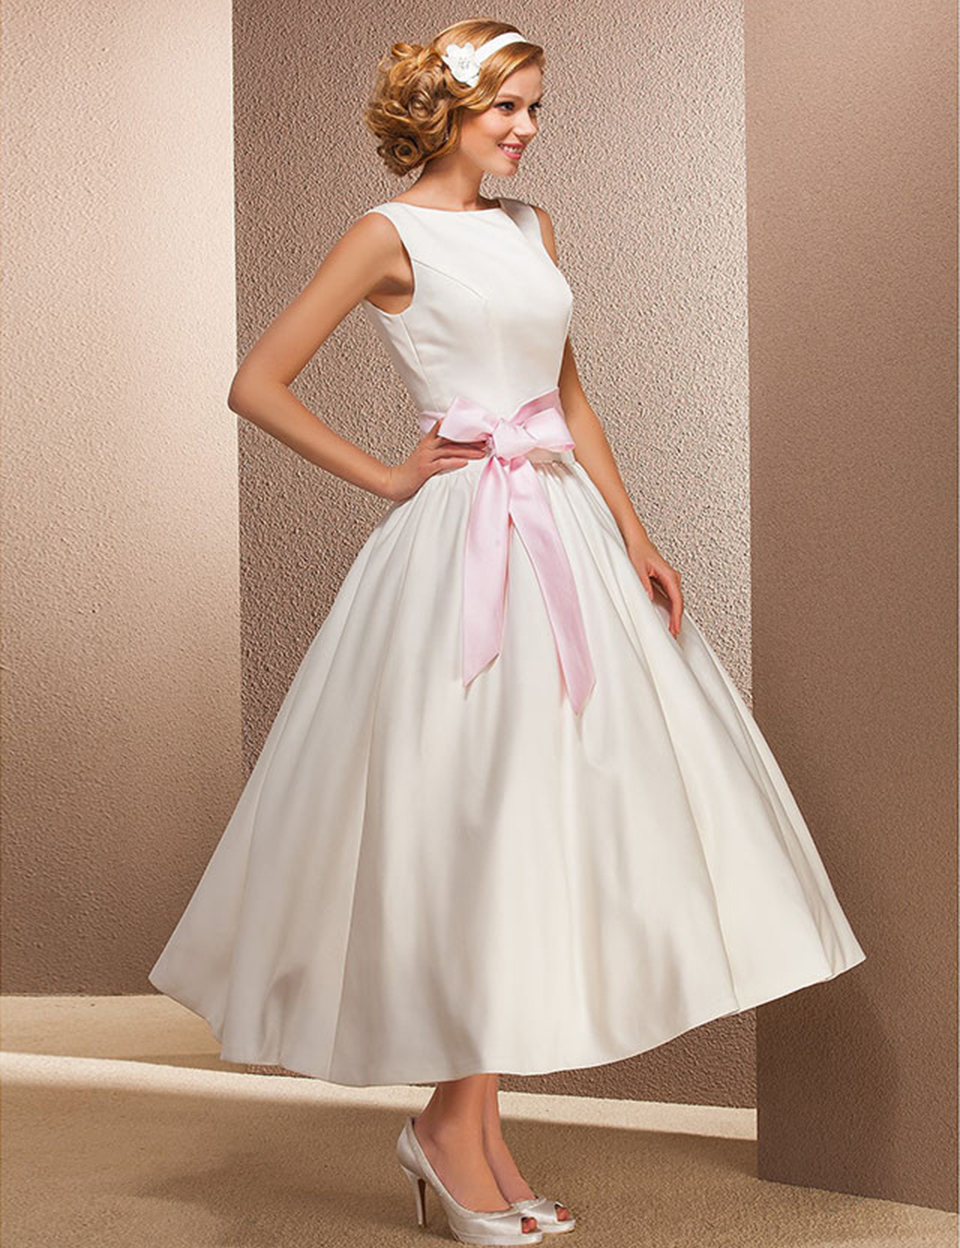 6de4a4c875f Vintage Short Ivory Satin Wedding Dresses Boat Neck Tea Length Wedding Dress  With Pink Ribbon Ball Gown Bridal Dresses PA54-in Wedding Dresses from  Weddings ...